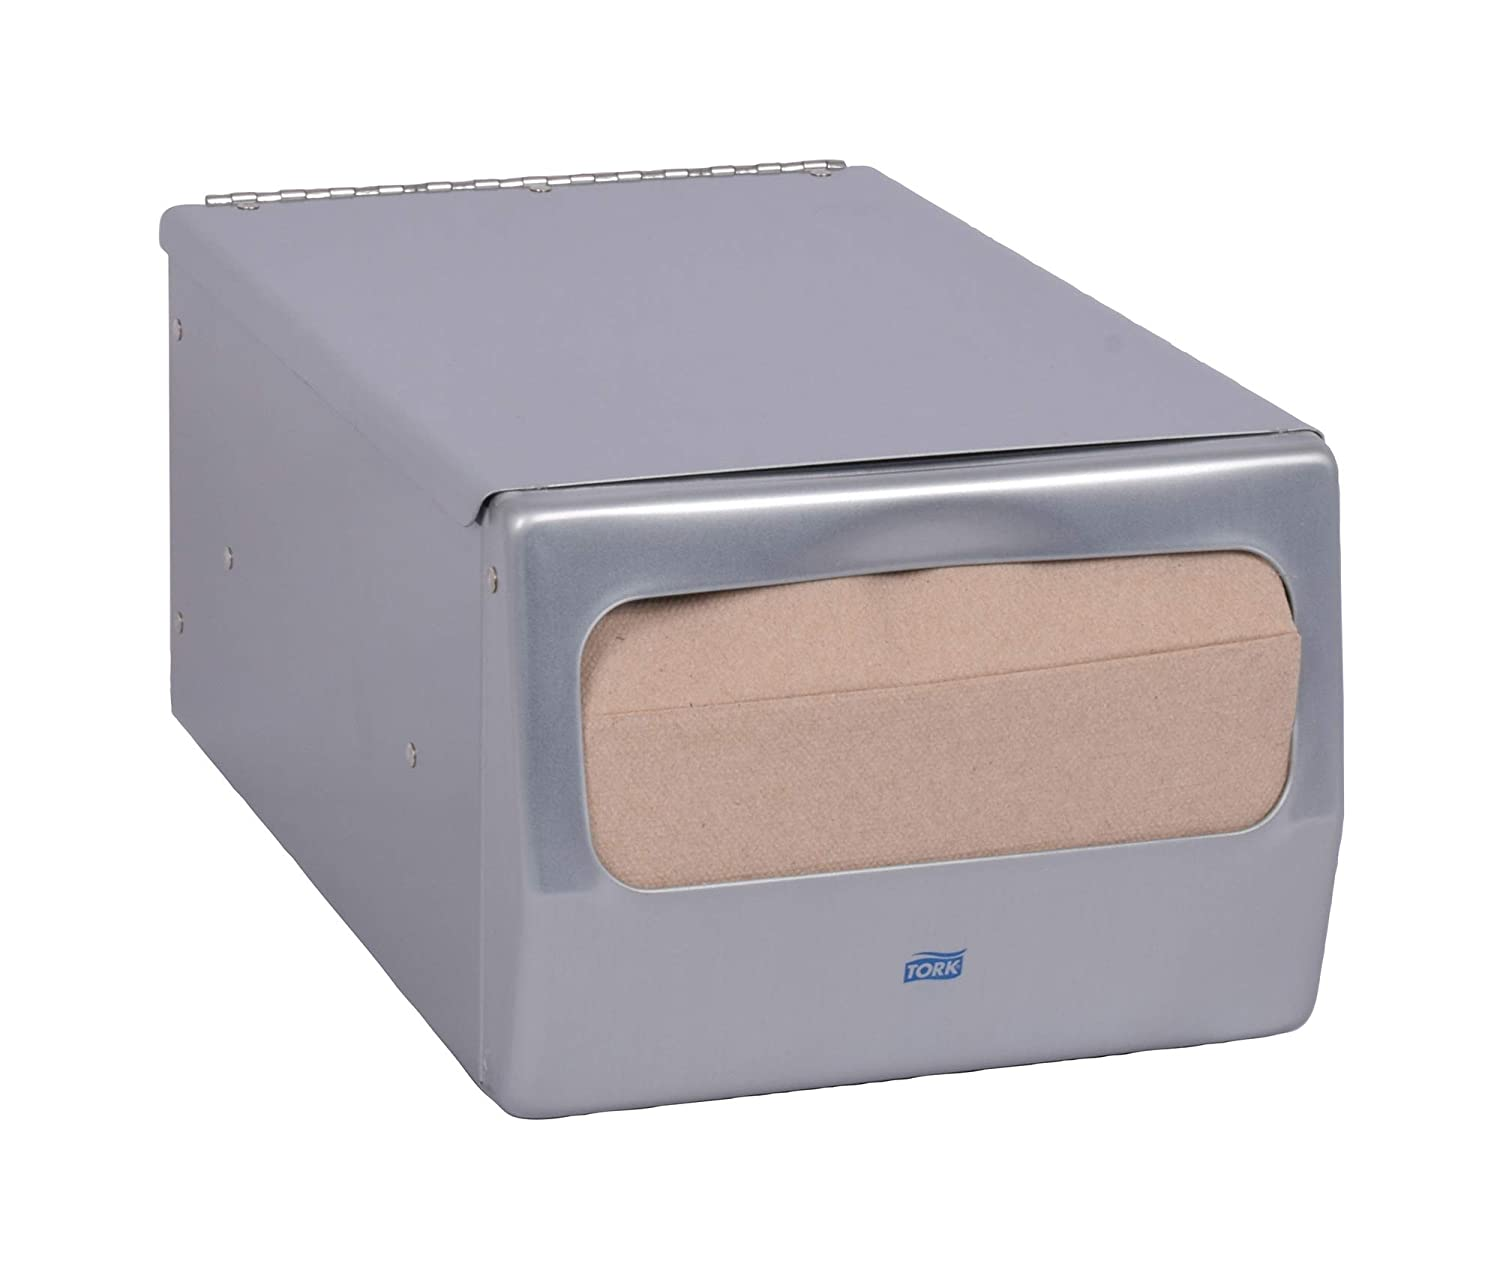 Amazon.com: Tork 17CBS Masterfold Counter Napkin Dispenser, 5.625